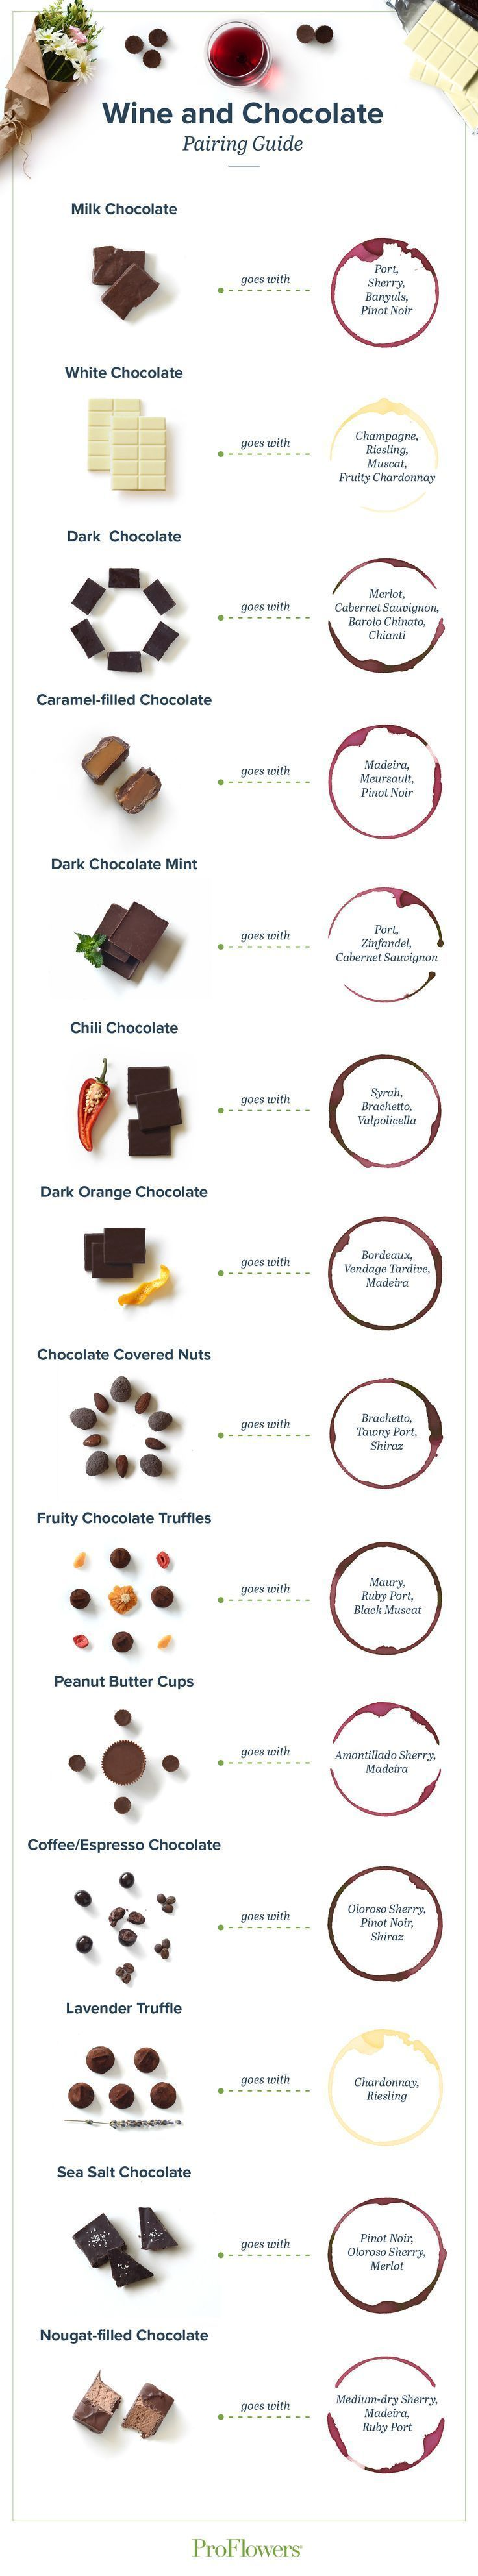 Pairing wine and chocolate can be difficult because of the bold flavors. We came up with a guide to help you highlight the wine as well as the chocolate!  {wineglasswriter.com/}